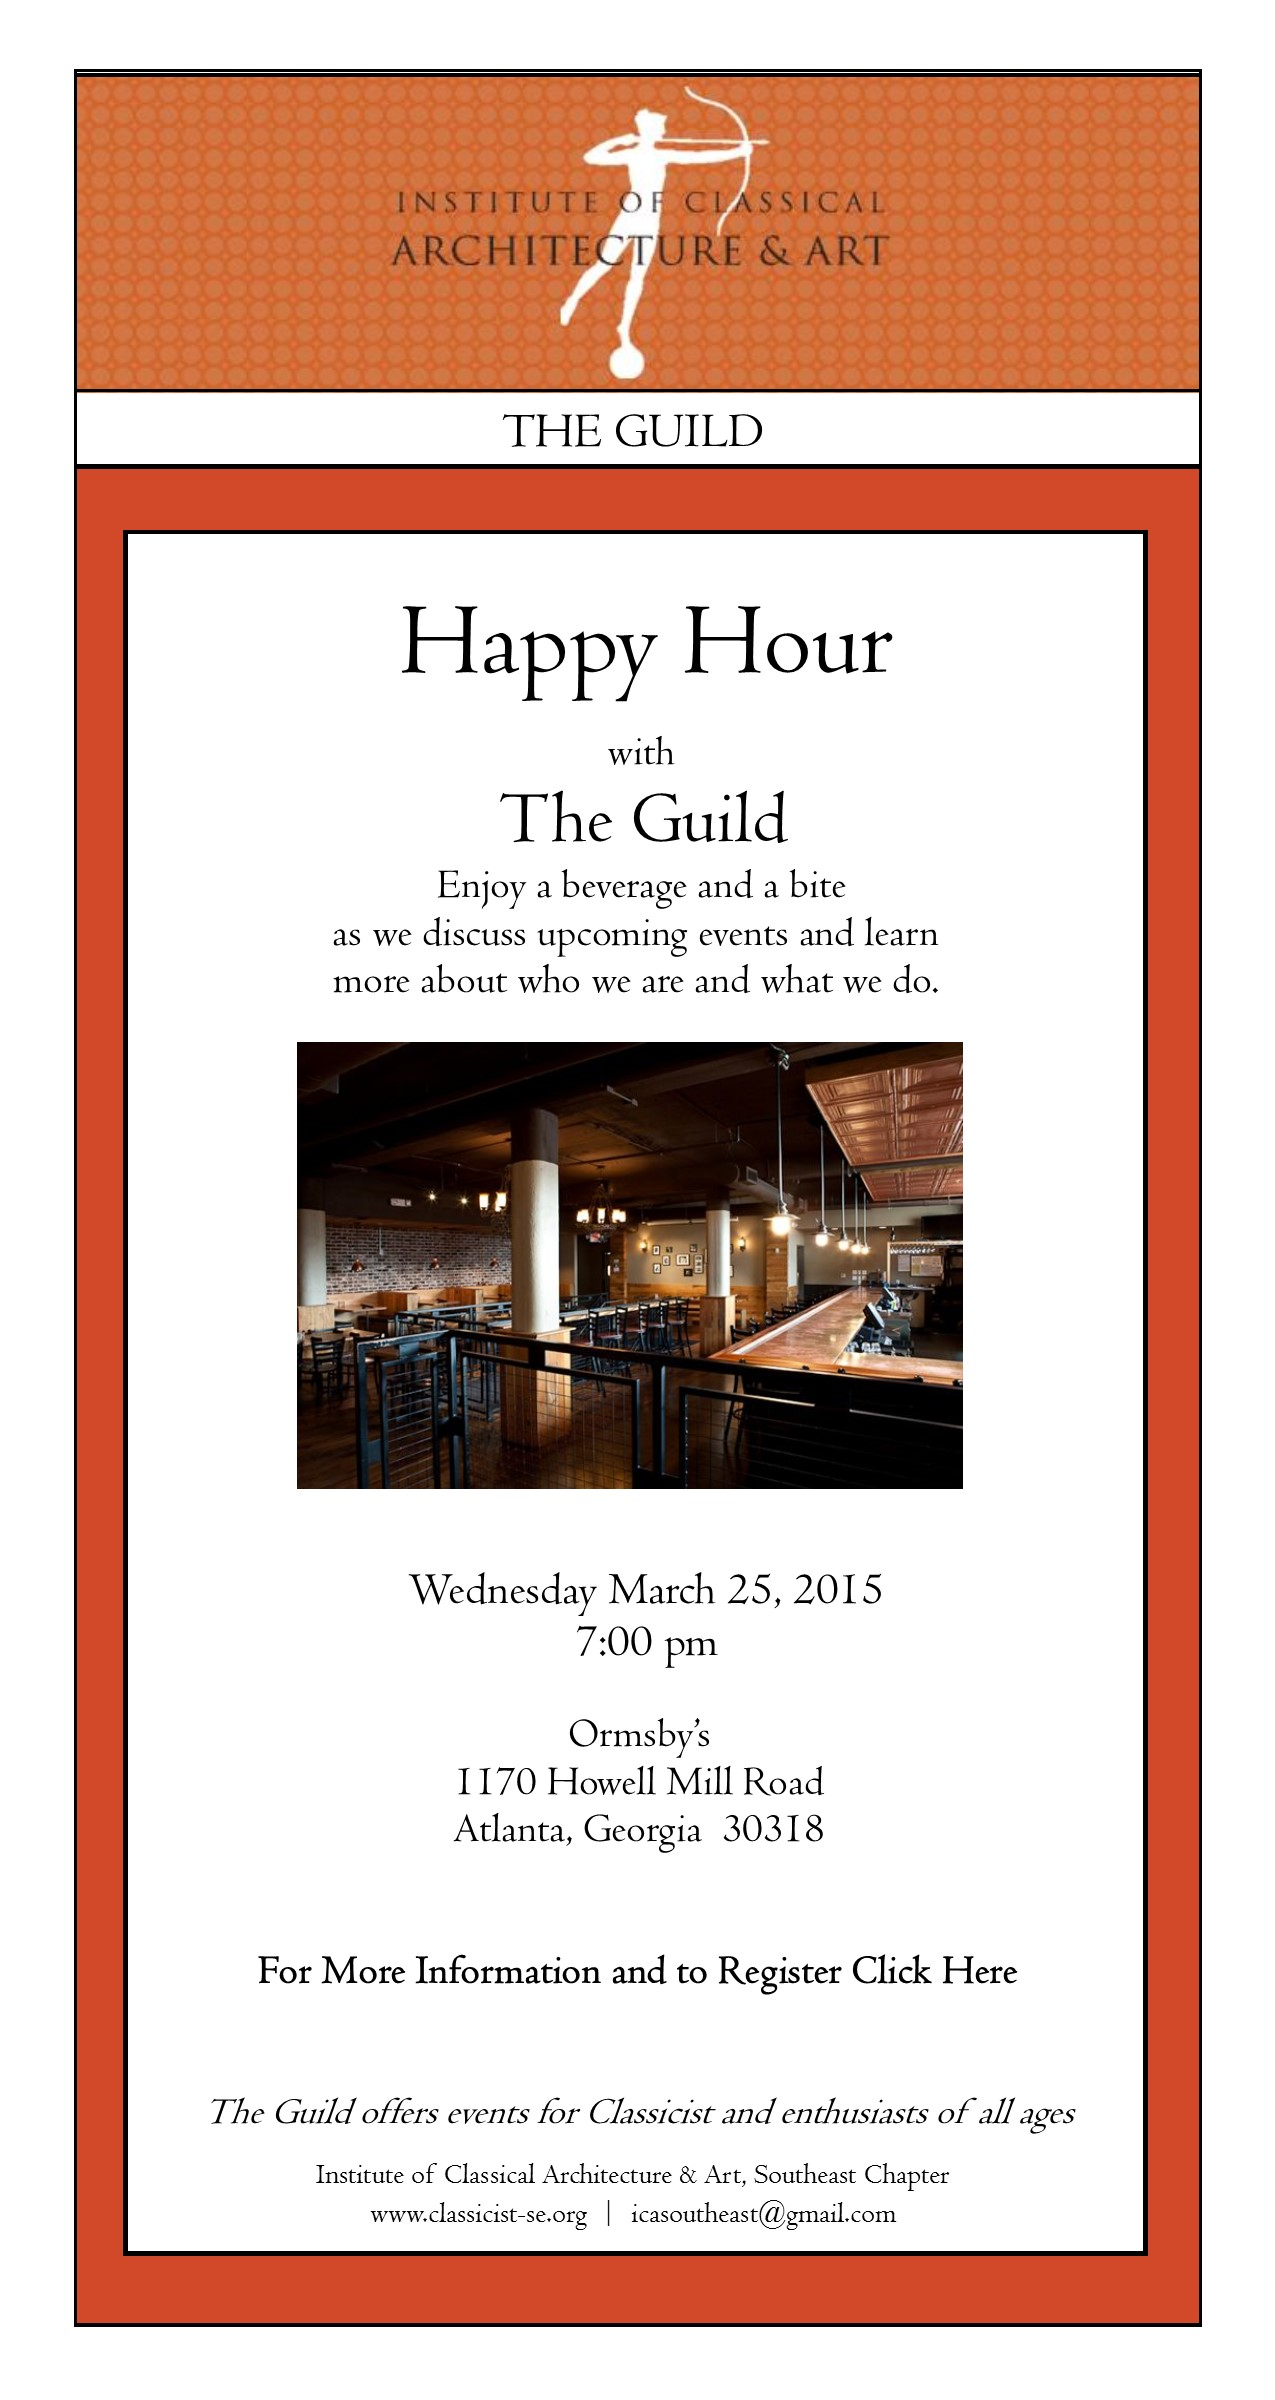 The Guild - Happy Hour